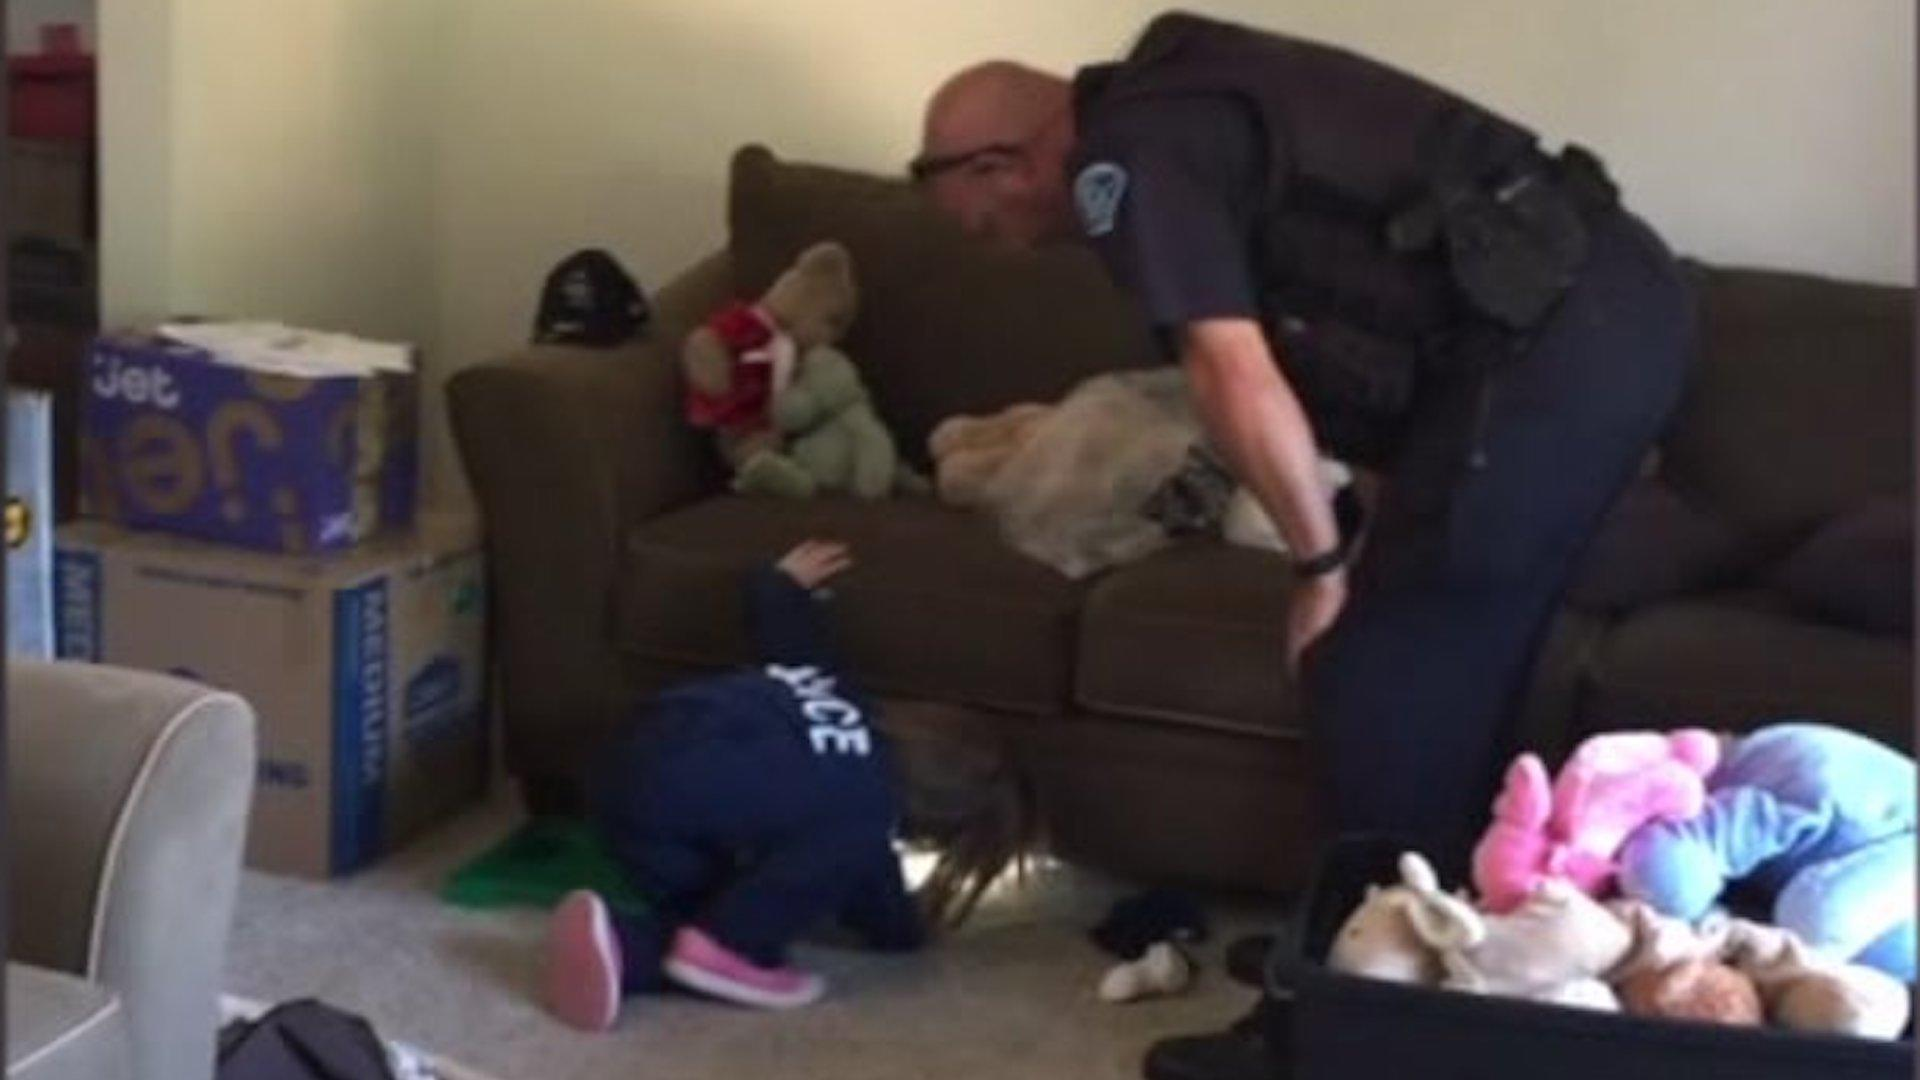 Officer Goes Above and Beyond to Help 4-Year-Old Girl Hunt for Monsters